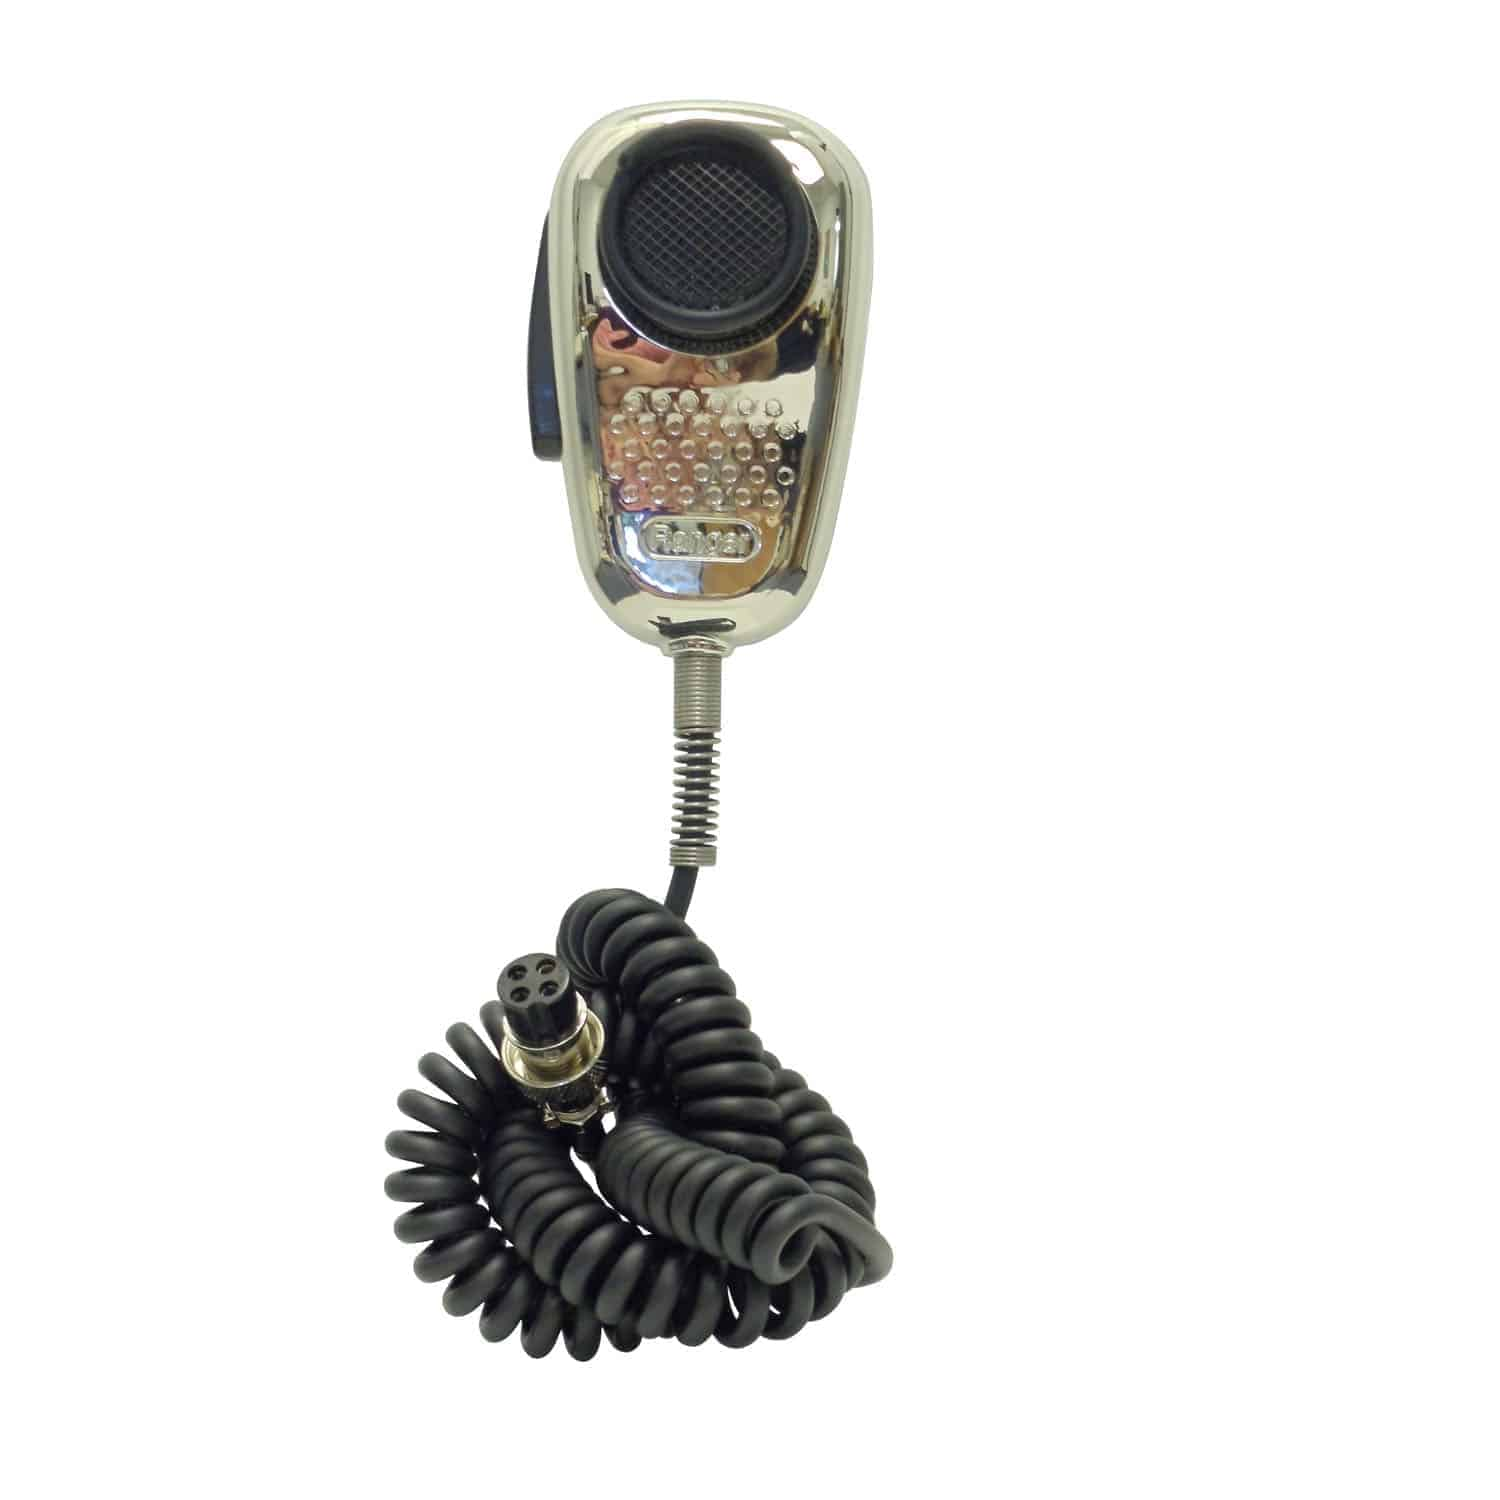 SRA198-C Ranger 4 Pin CB Mic With Noise Cancelling (Chrome)